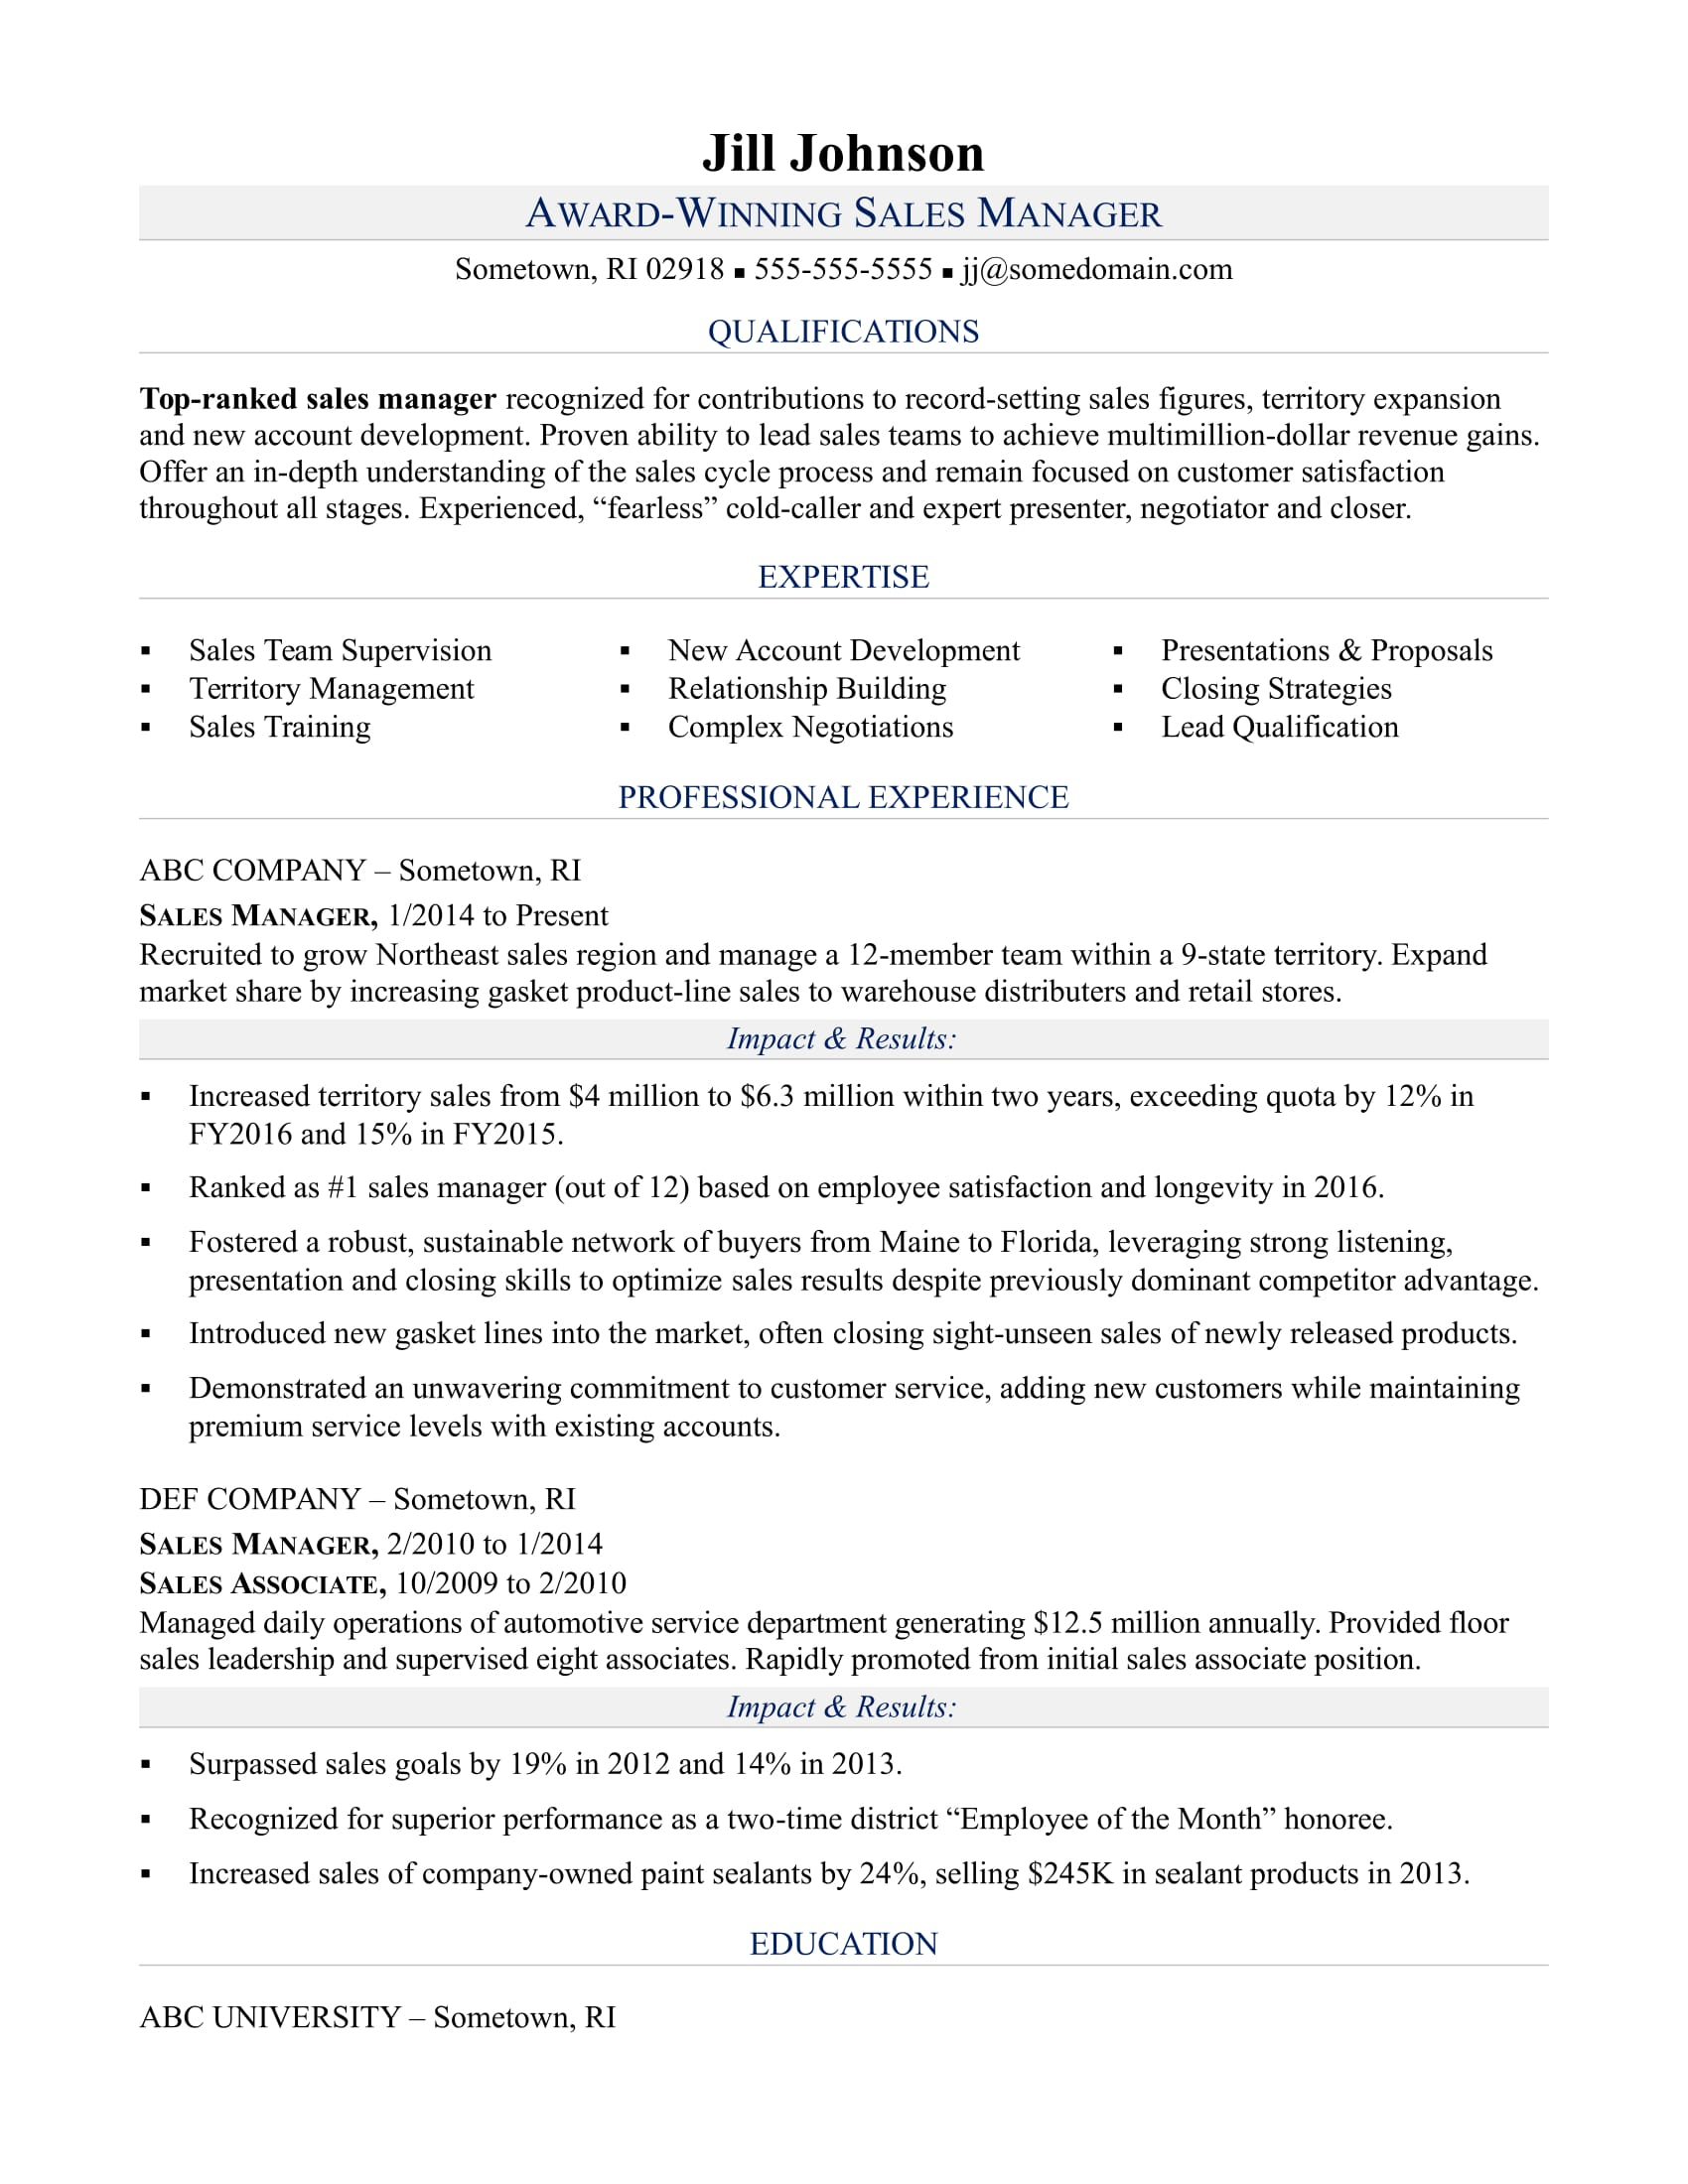 sample resume for a sales manager - Regional Sales Manager Resume